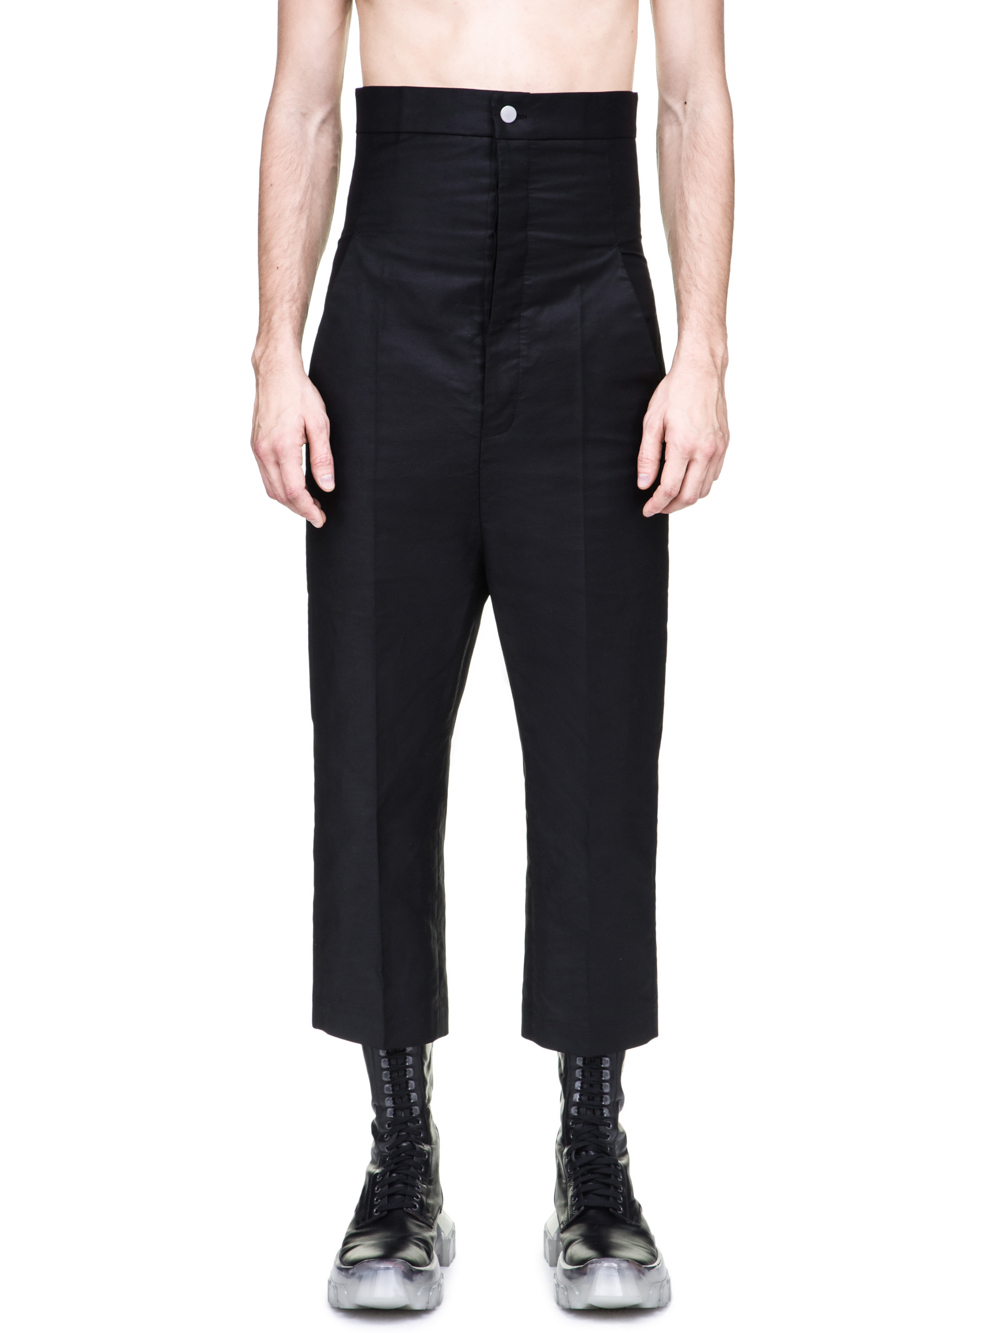 RICK OWENS OFF-THE-RUNWAY DIRT JEANS IN BLACK ARE EXTREMELY HIGH-WAISTED